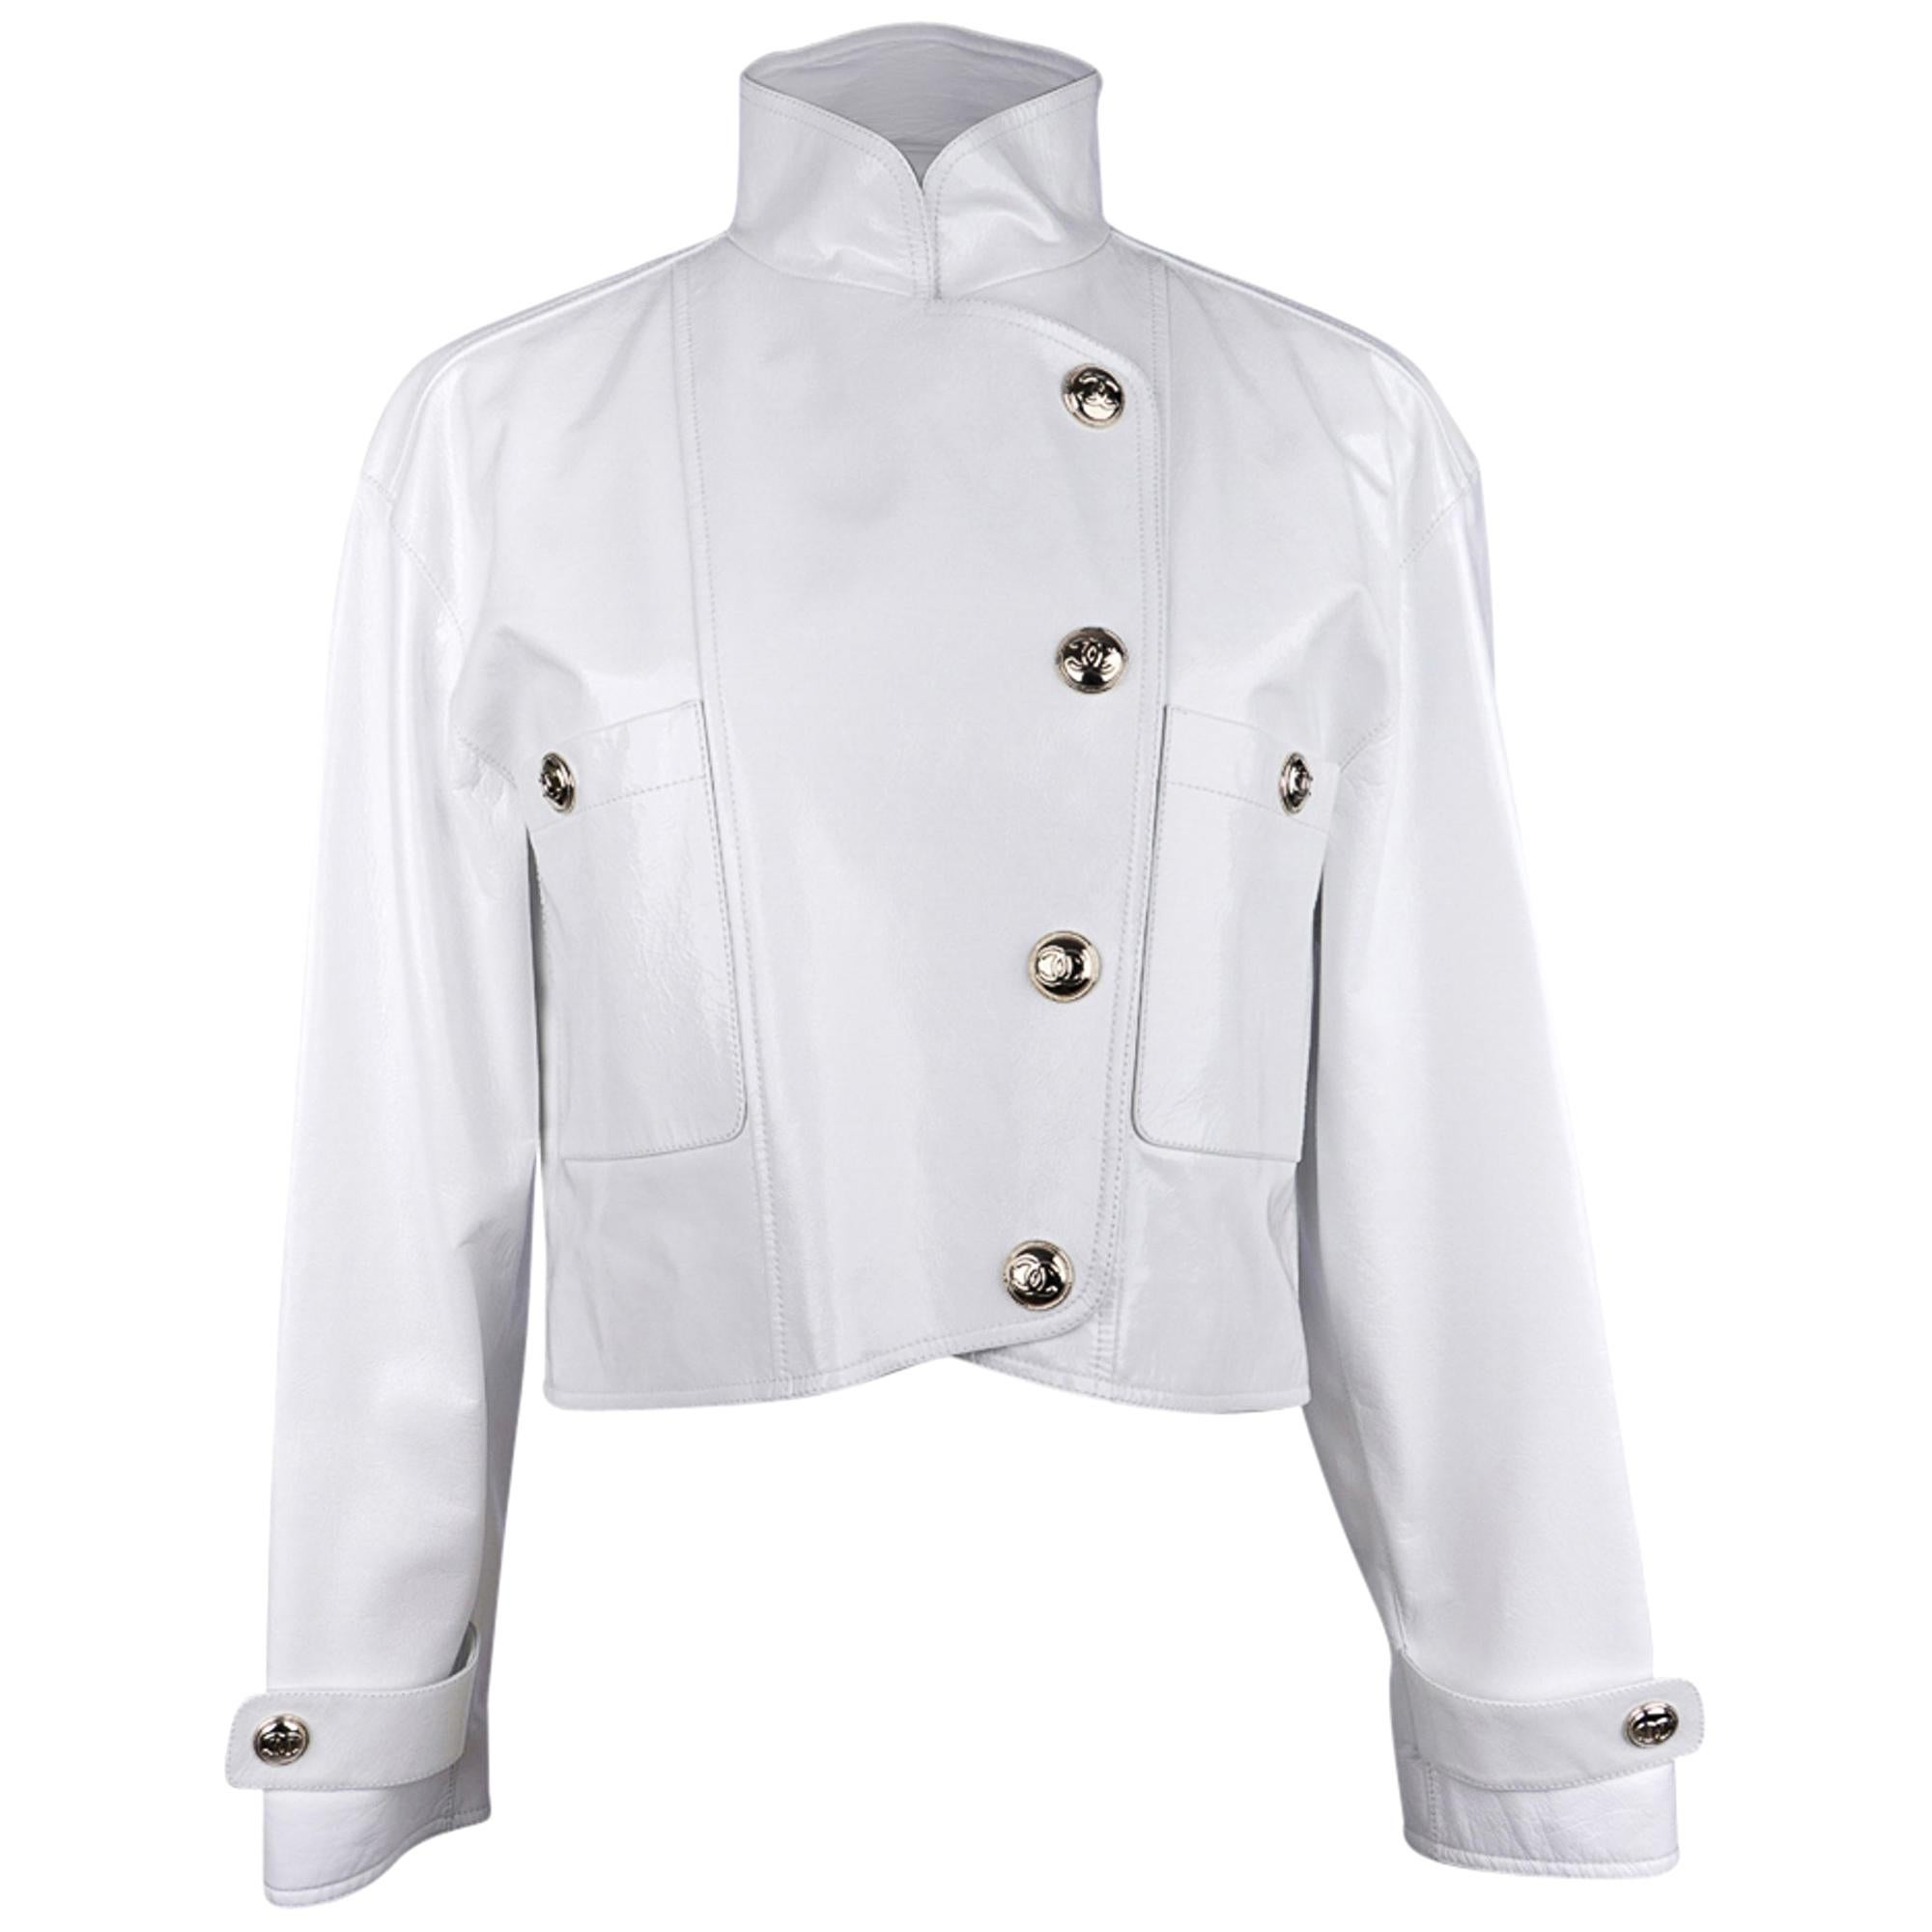 Chanel 2020-21FW Jacket White Patent Leather Short Biker Style 36 / 4 New w/Tags